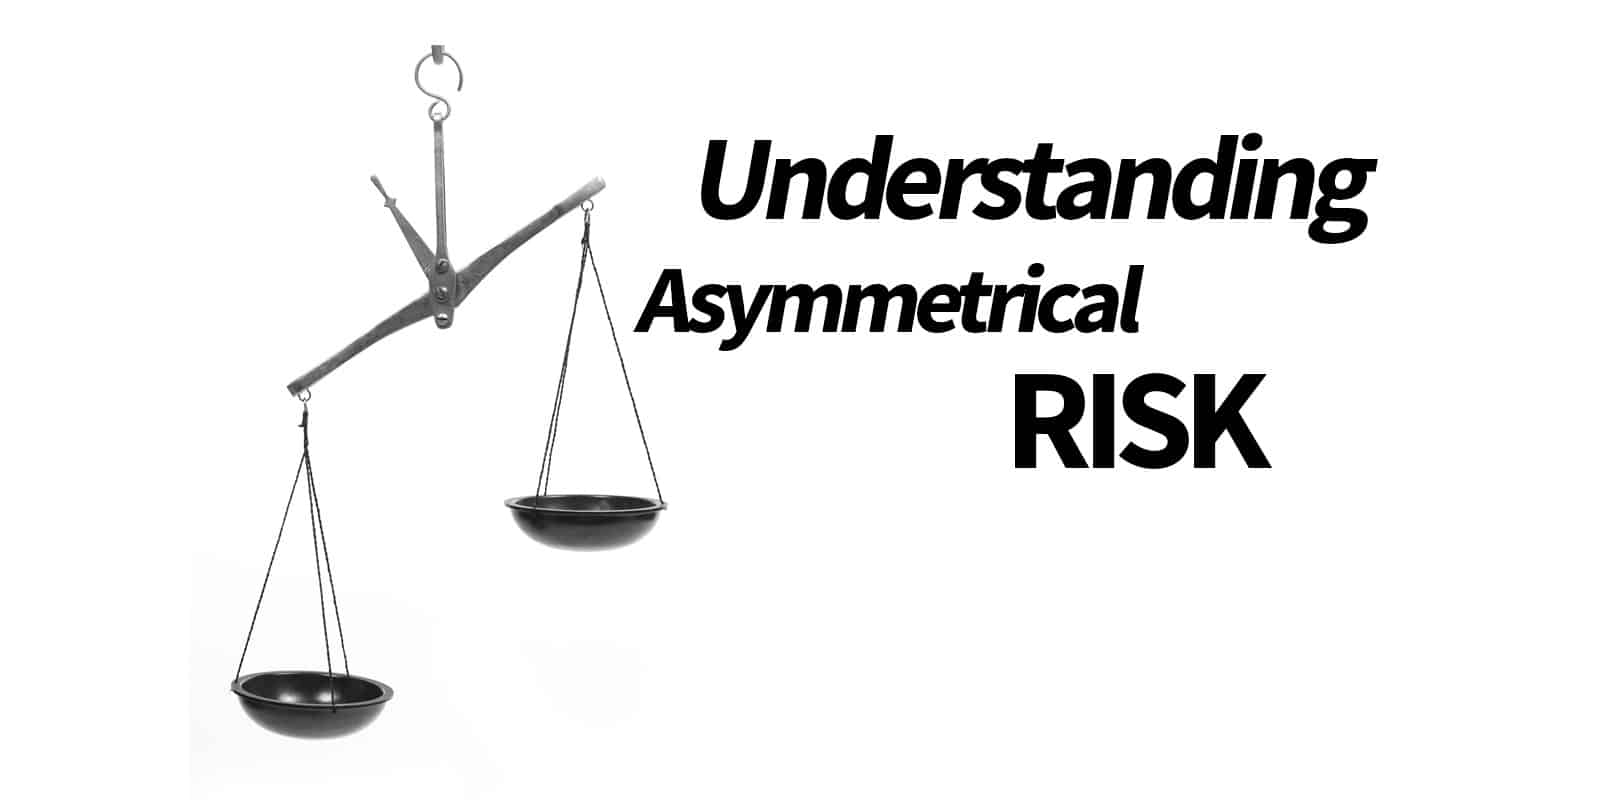 asymmetrical risk